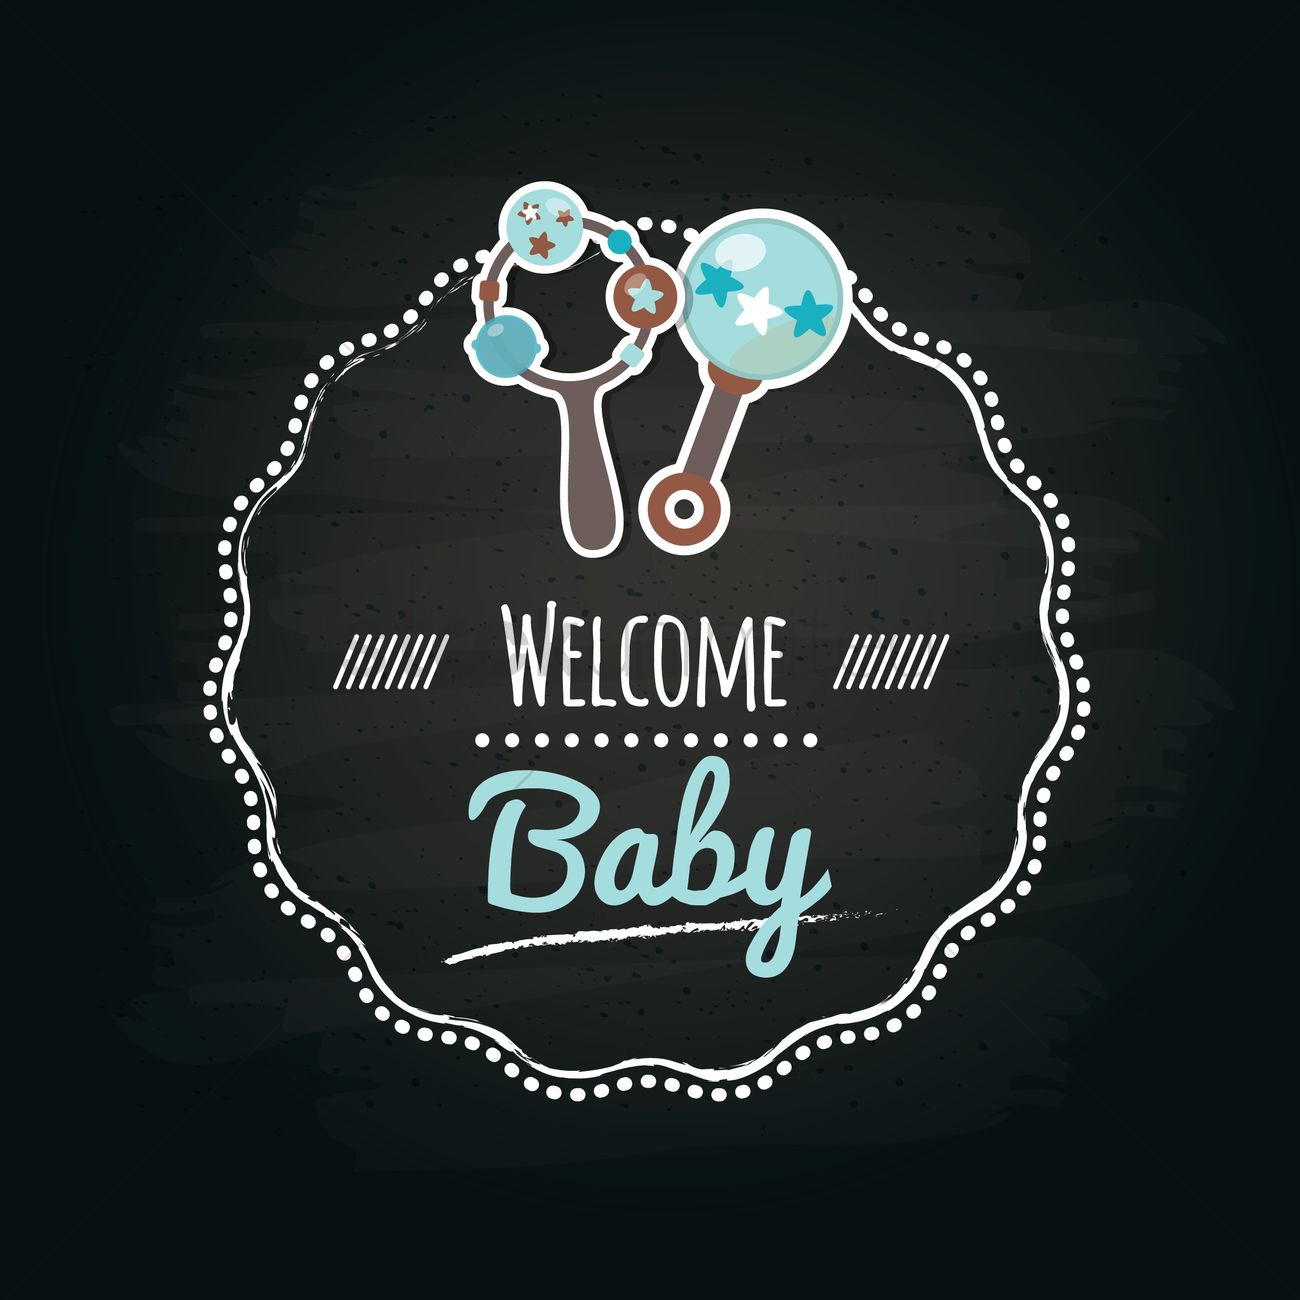 welcome baby label vector image 1617301 stockunlimited